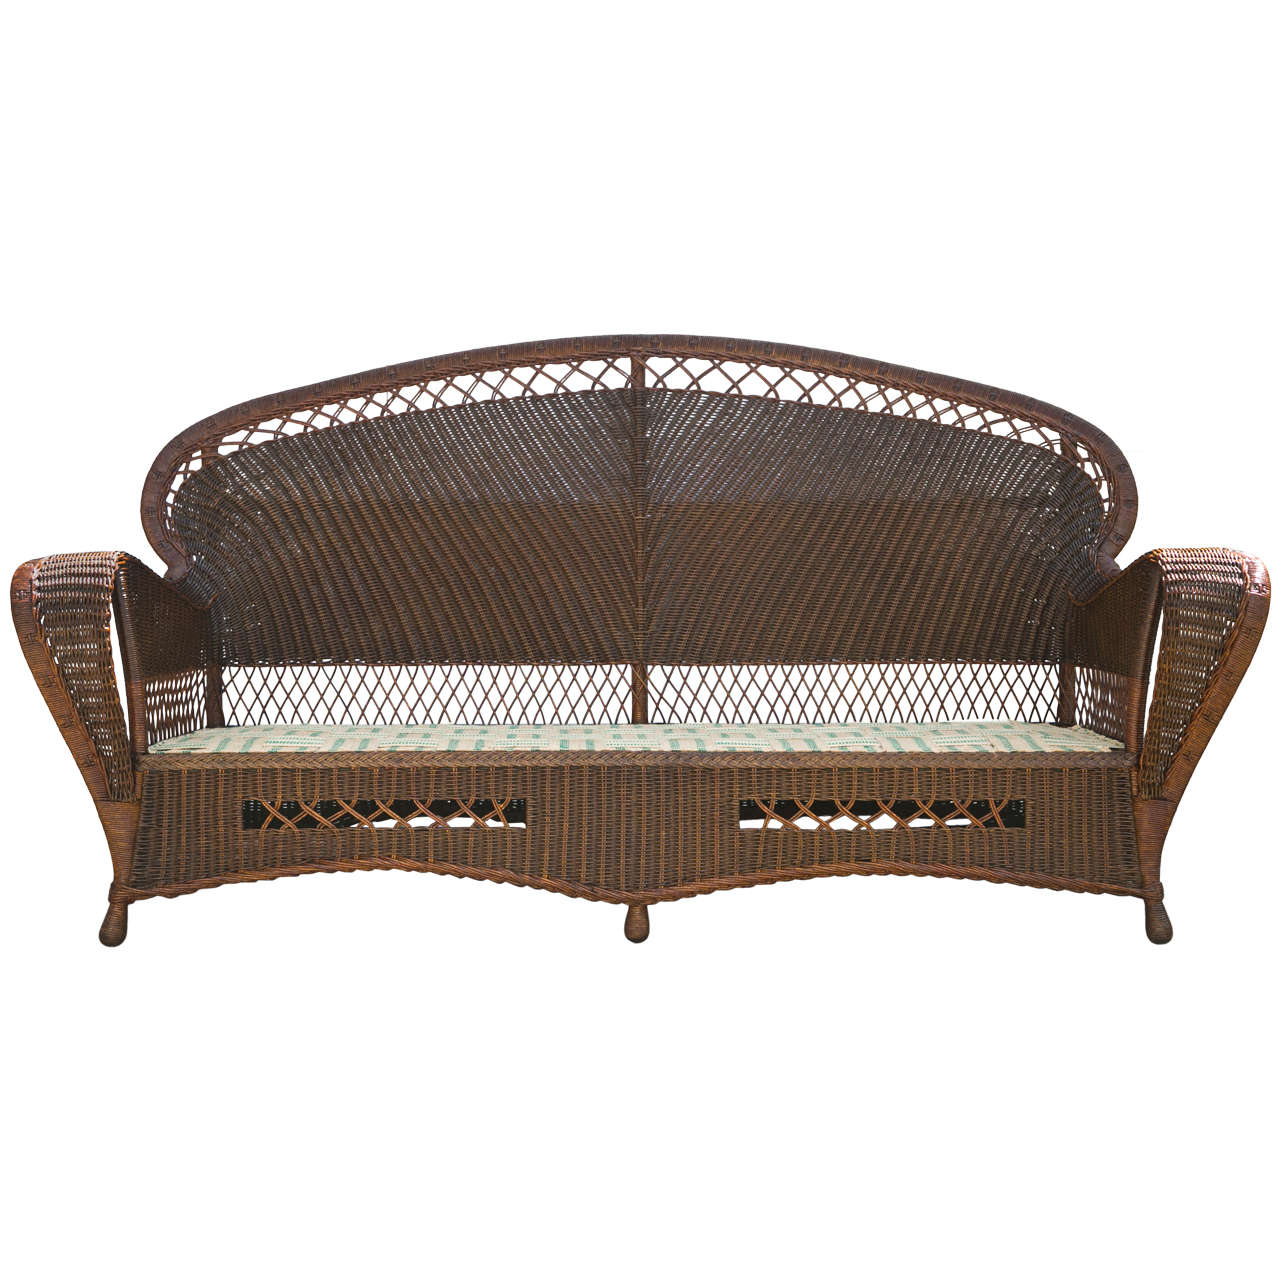 antique wicker chairs one and a half chair canada sofa at 1stdibs